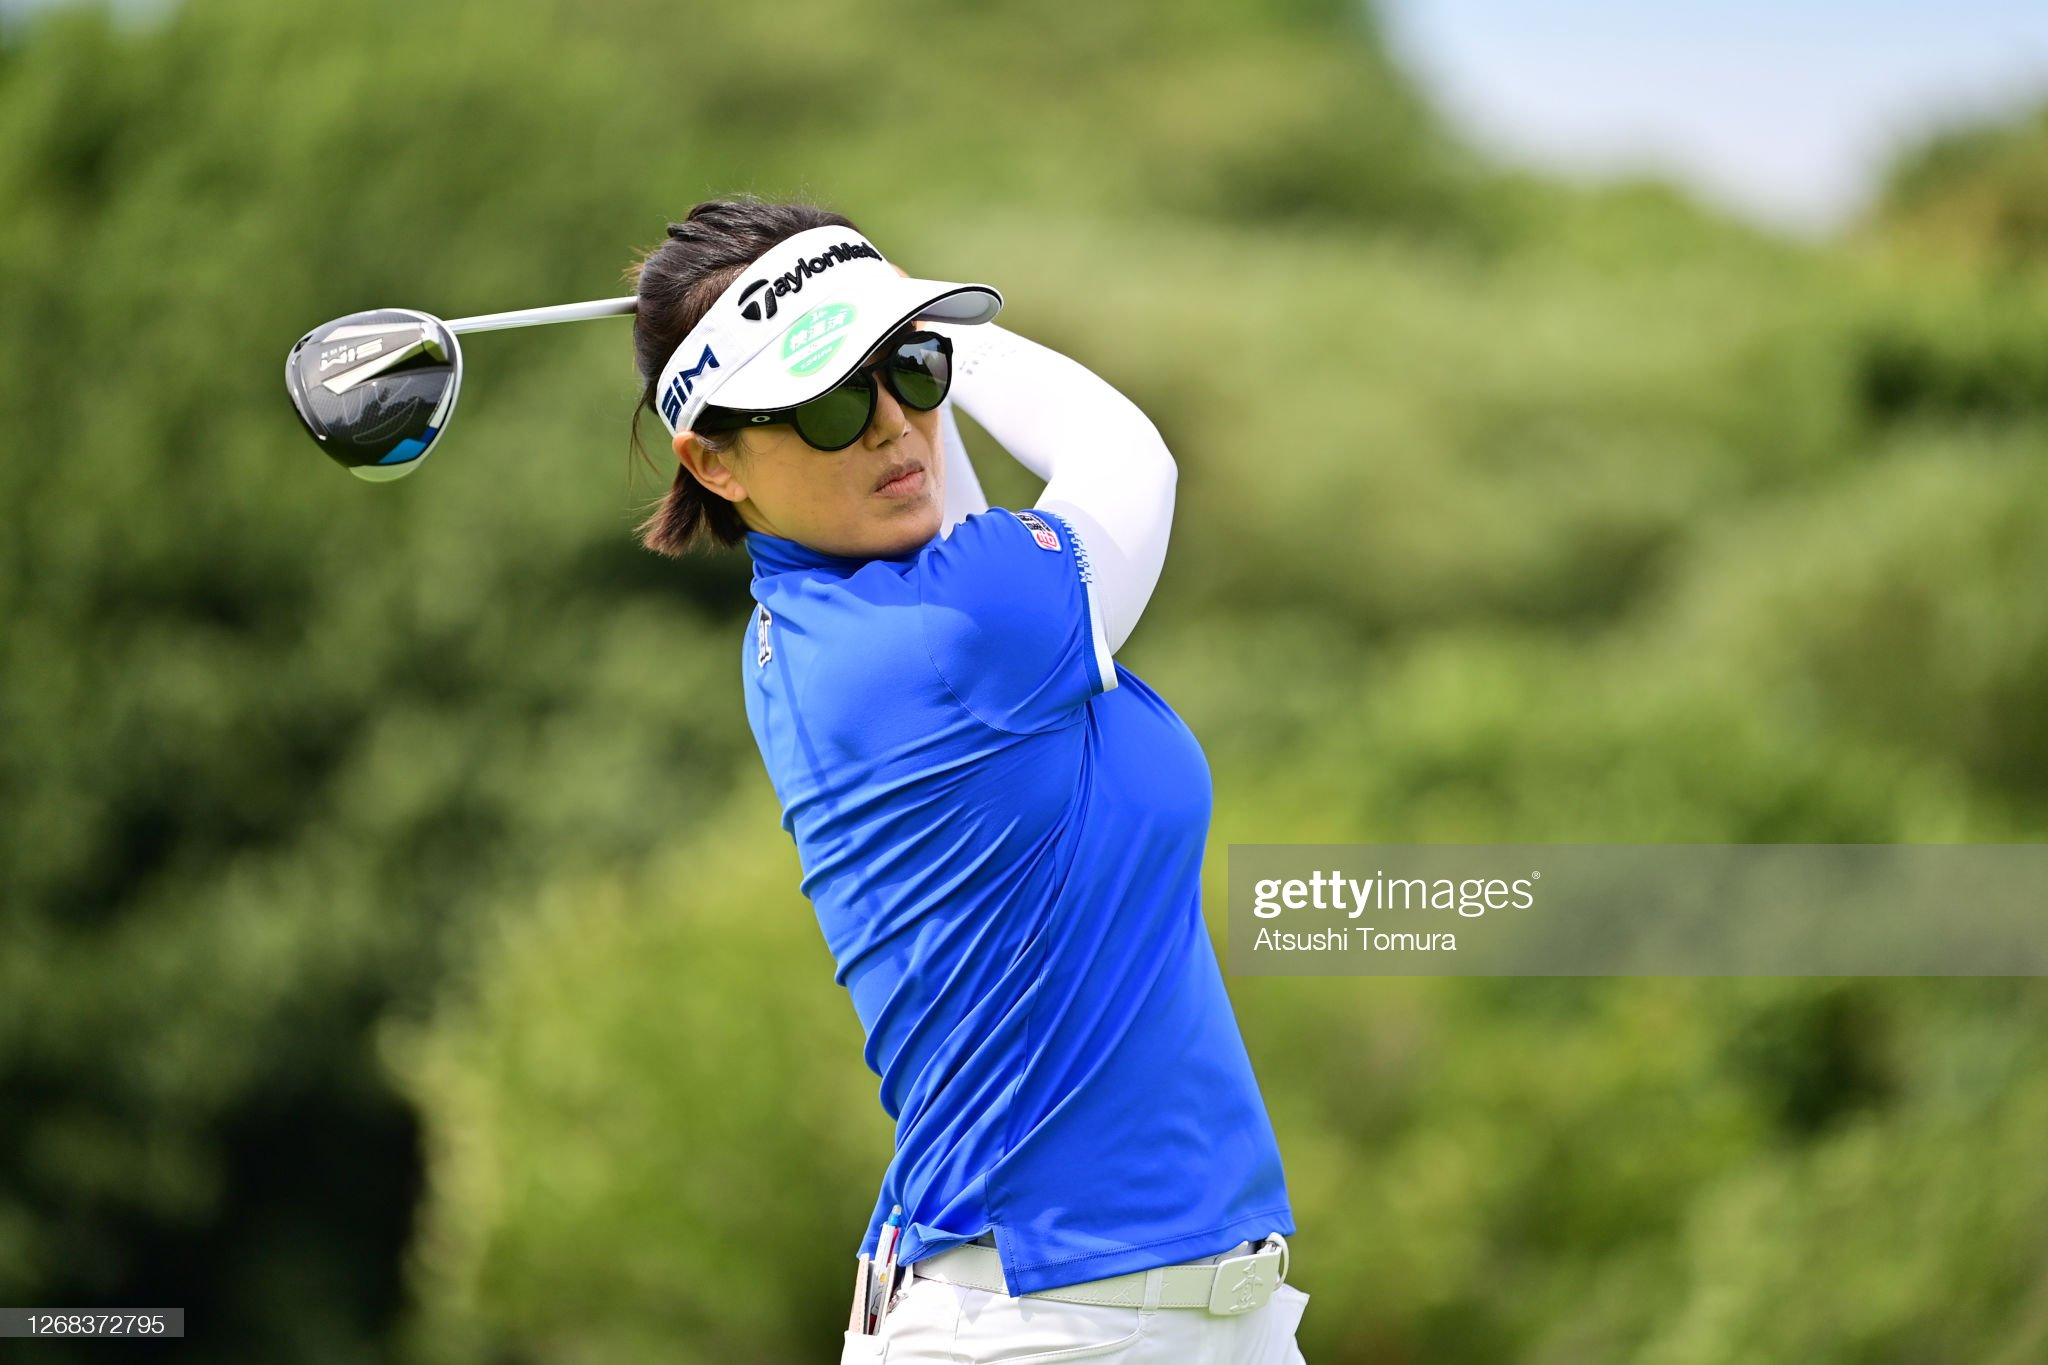 https://media.gettyimages.com/photos/mijeong-jeon-of-south-korea-plays-a-shot-on-the-15th-hole-during-a-picture-id1268372795?s=2048x2048